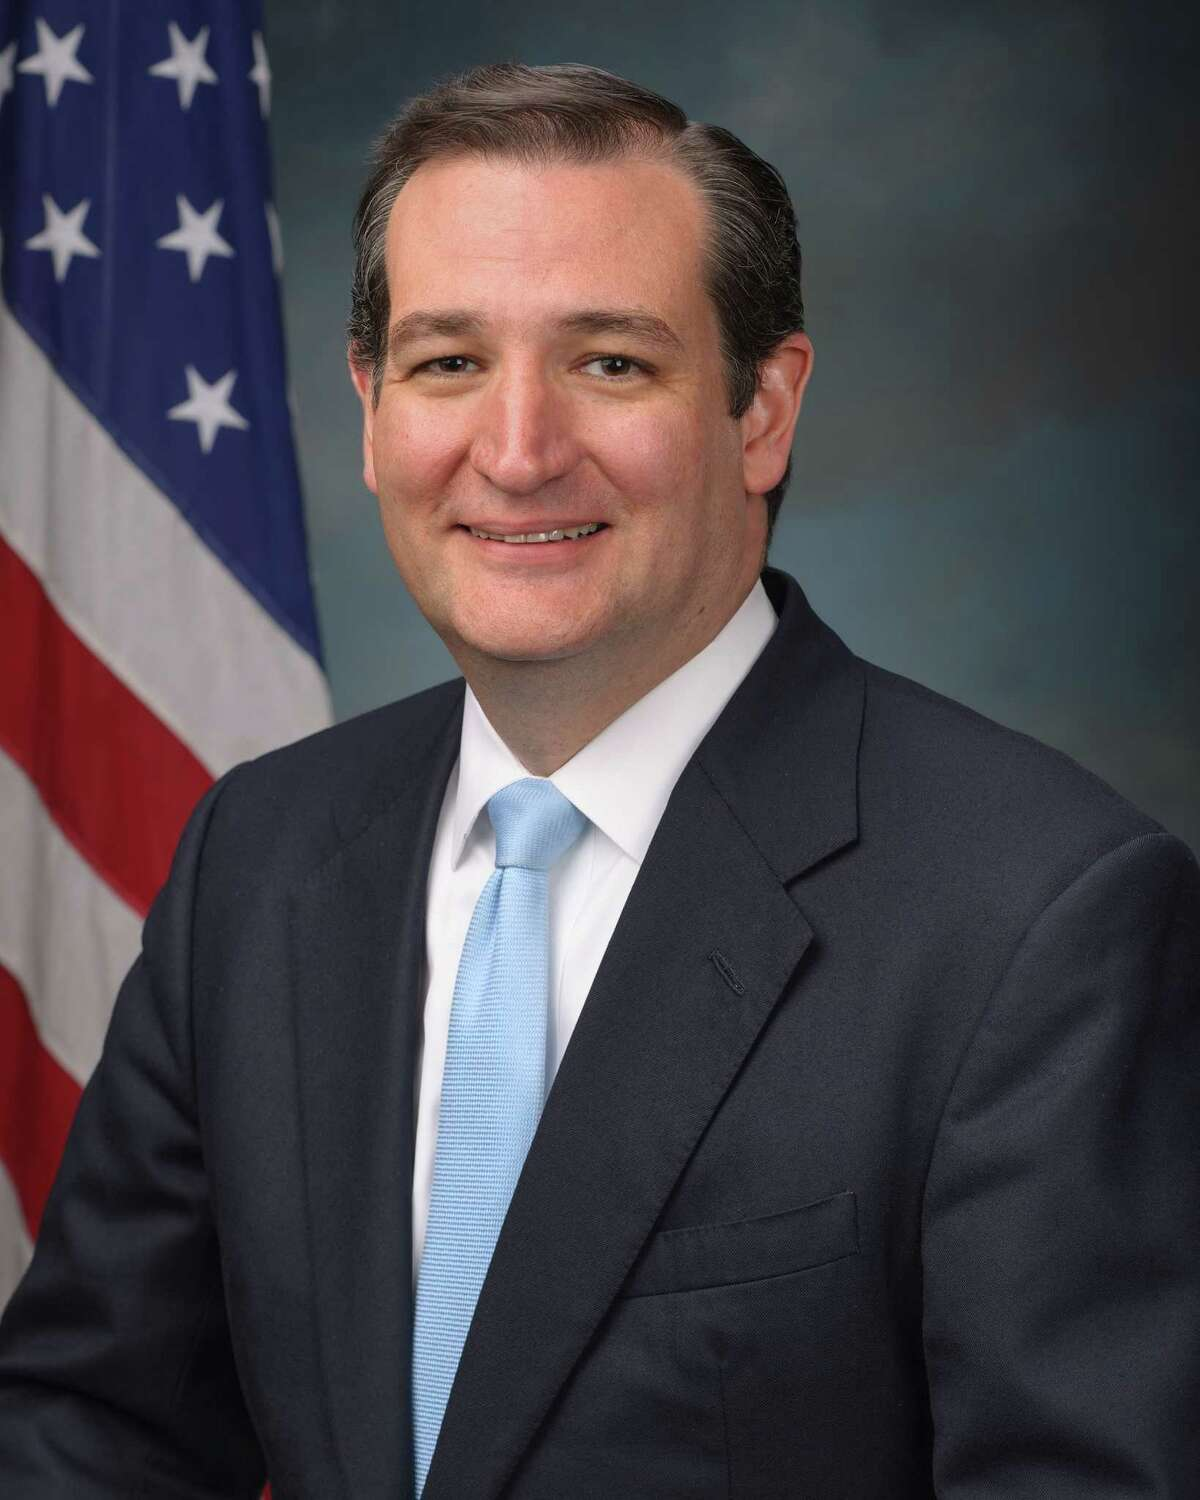 Senator Ted Cruz will visit Cleveland on April 8. He is one of the guest speakers at the Reagan Dinner hosted by the San Jacinto County Republican Party.